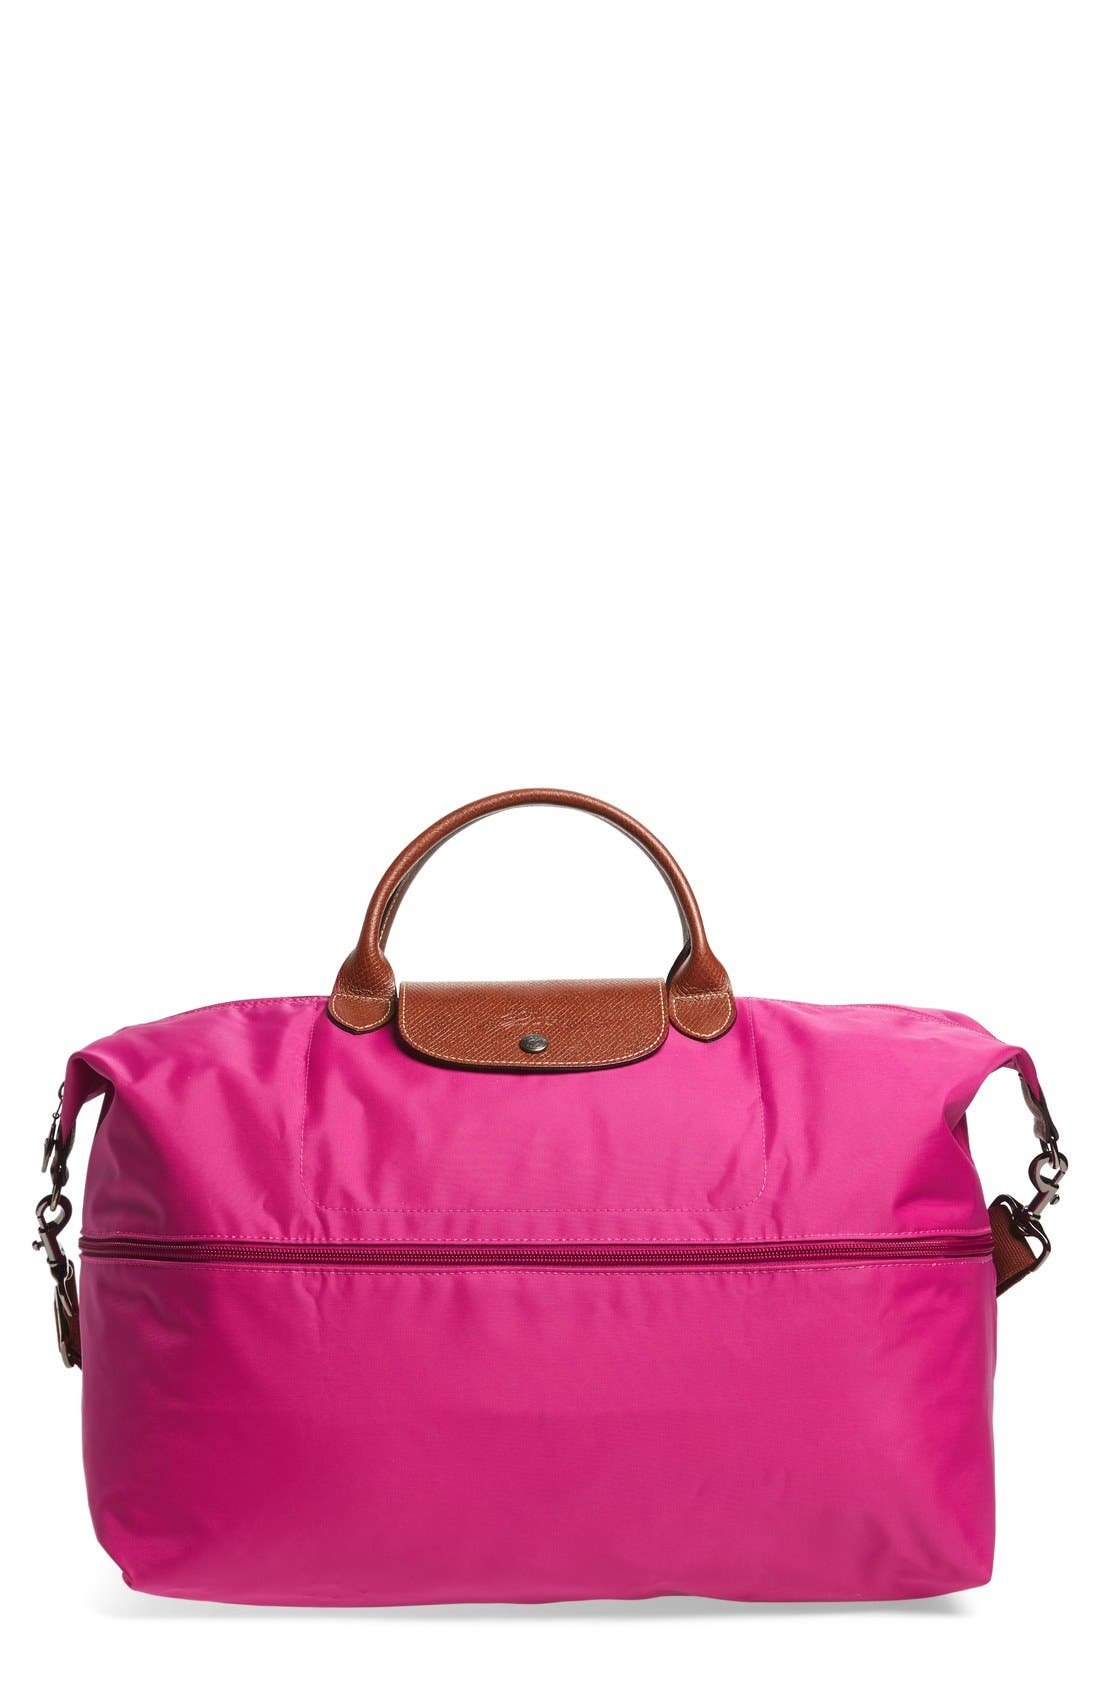 Main Image - Longchamp 'Le Pliage' Expandable Travel Bag (21 Inch)